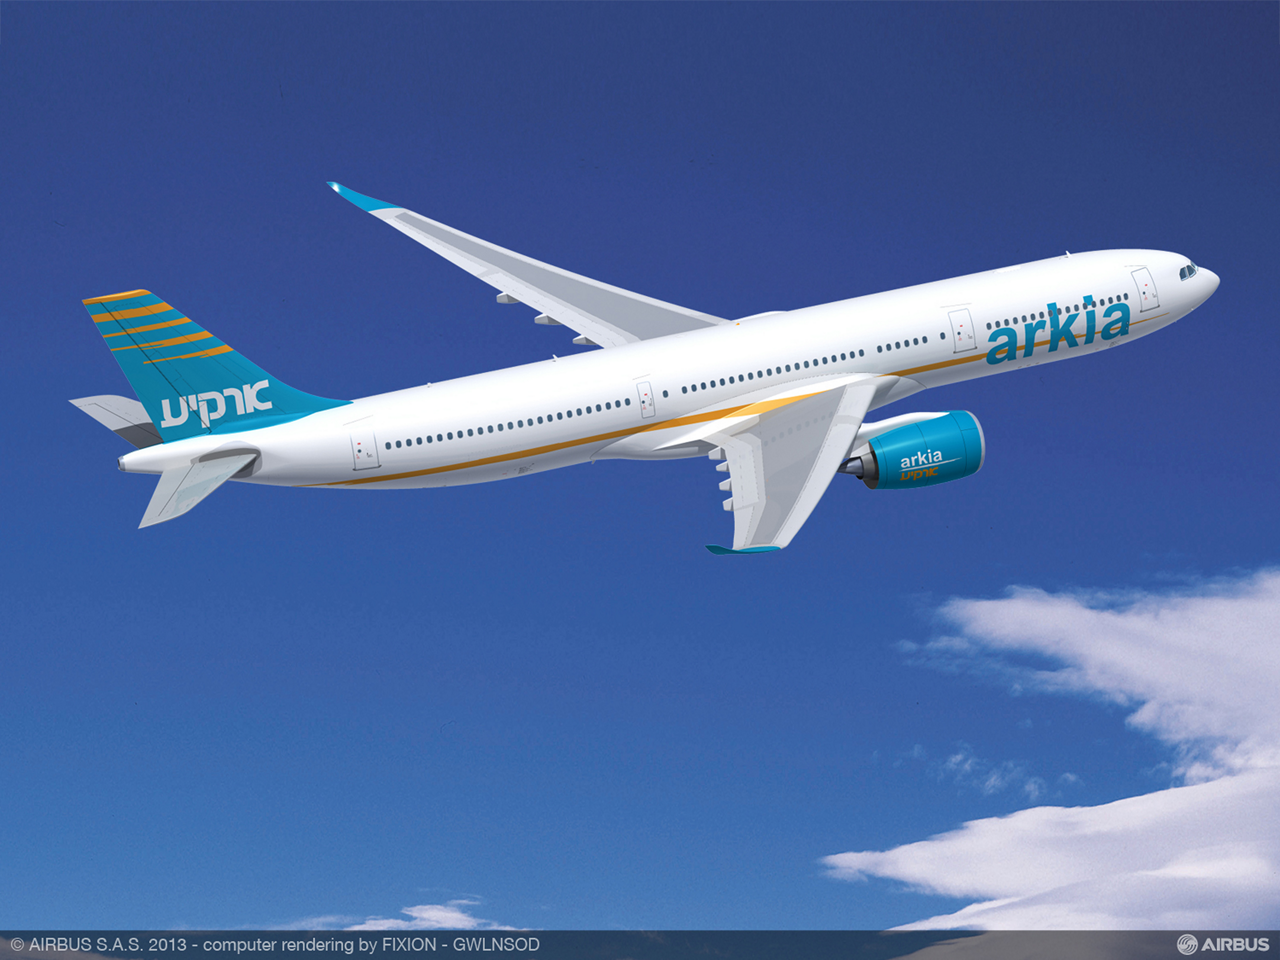 ARKIA Israeli Airlines signed a Memorandum of Understanding with Airbus for up to four A330-900neo aircraft – which will help this carrier expand its growing operations into long-haul business and leisure markets